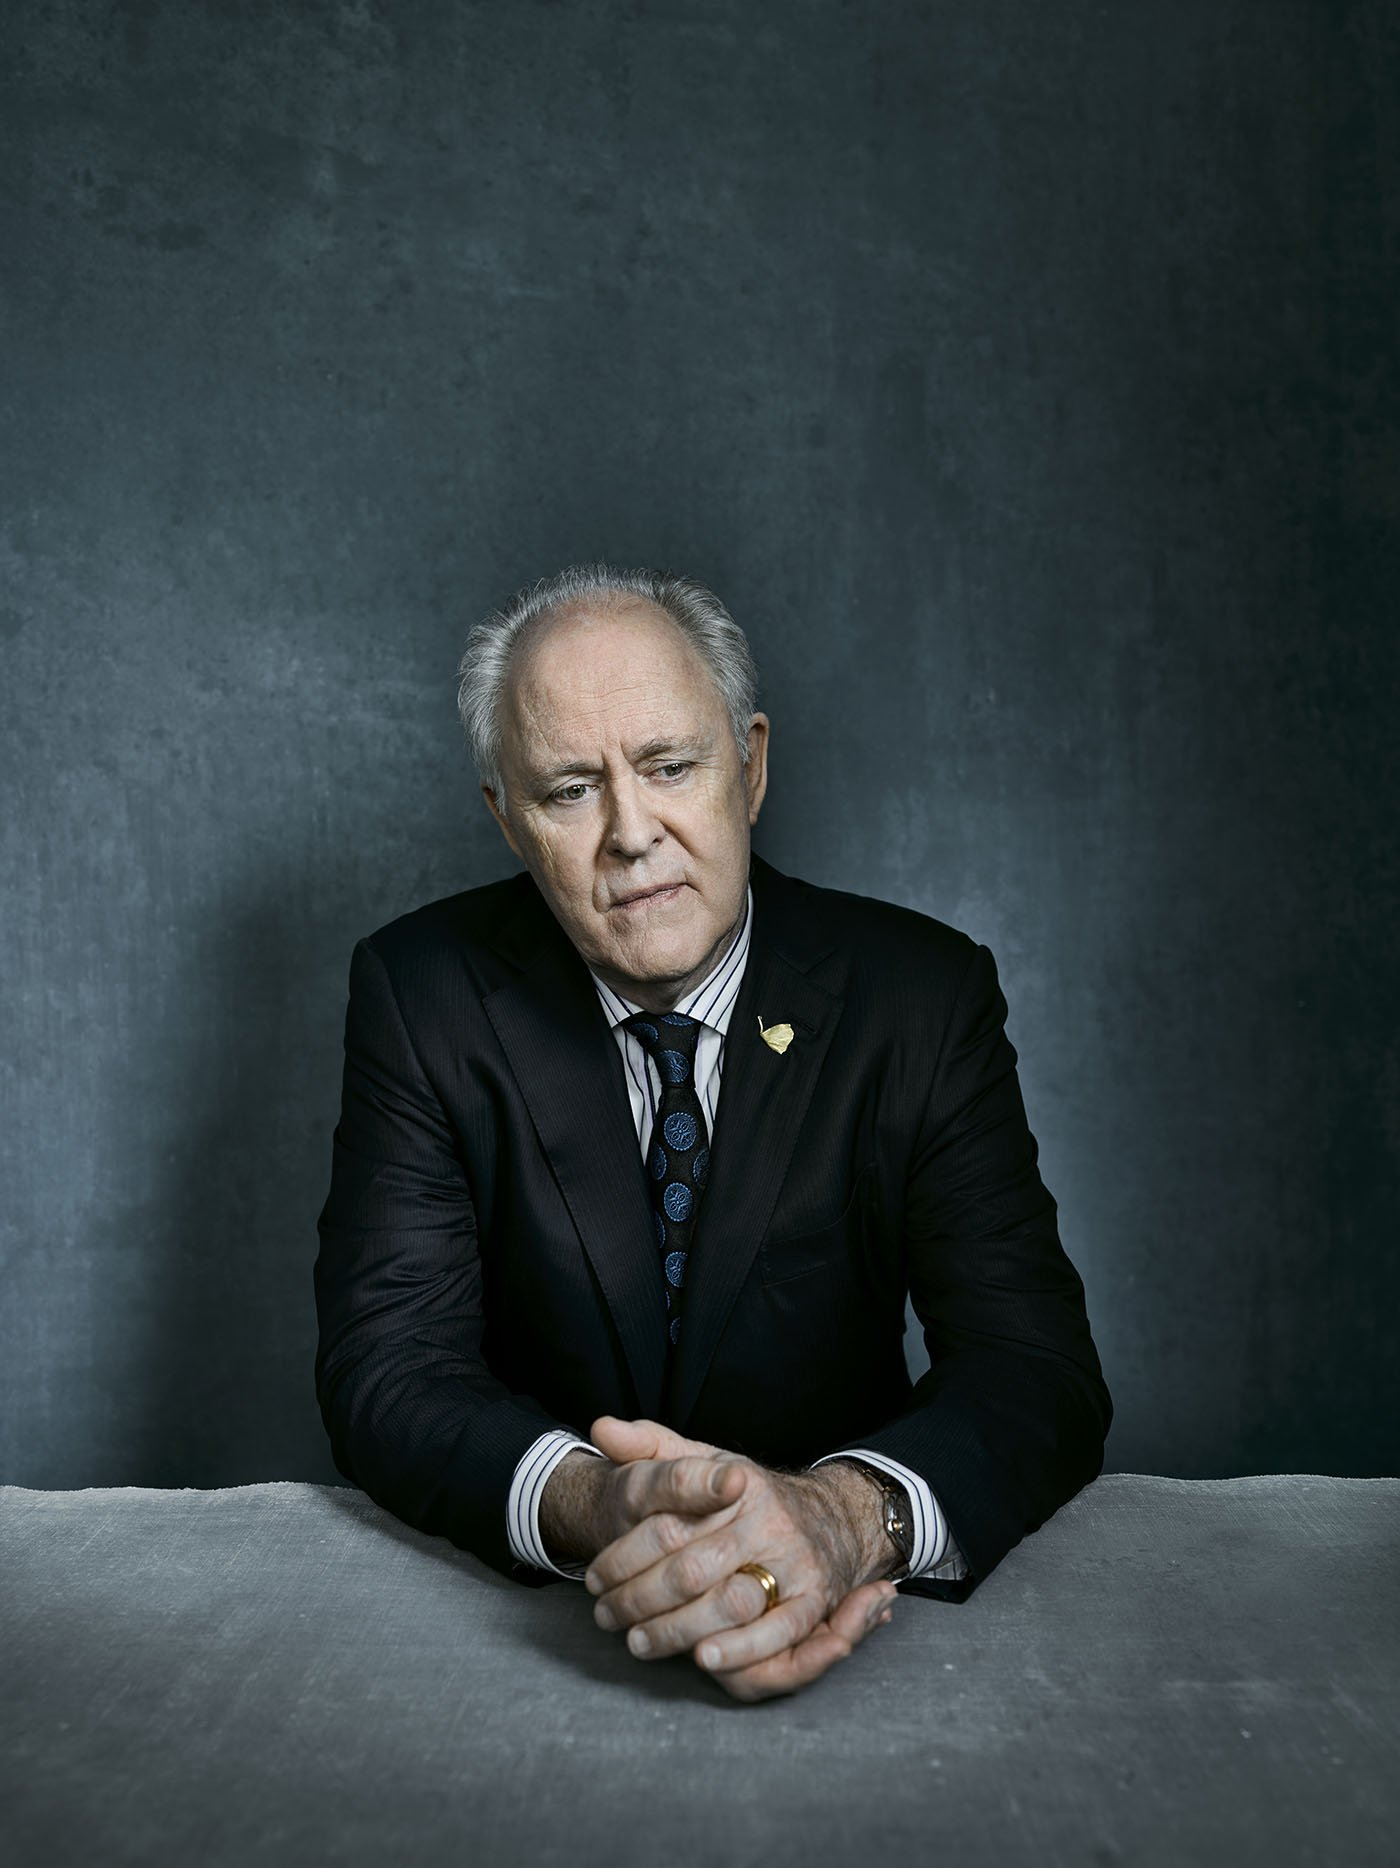 John Lithgow For The Wall Street Journal – Damn Ugly Photography